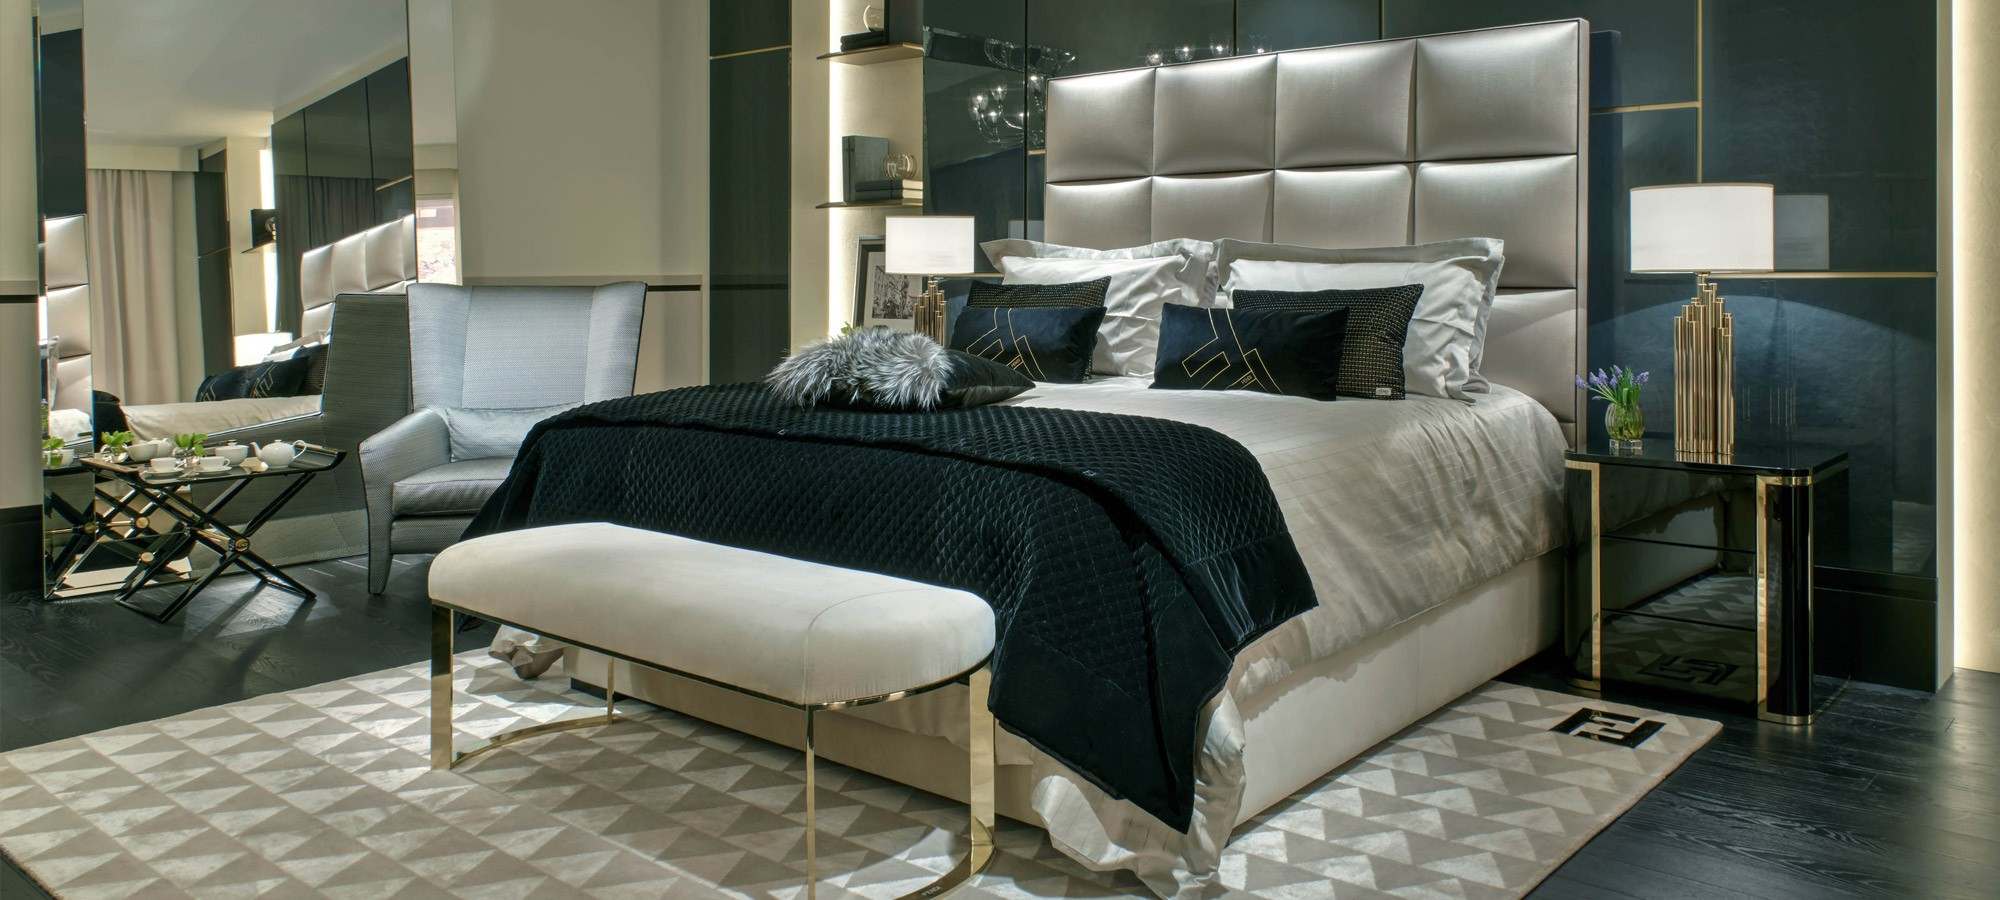 FF-Diamante-King-Bed-Mercury-Bedside-Tables-Asja-Bench